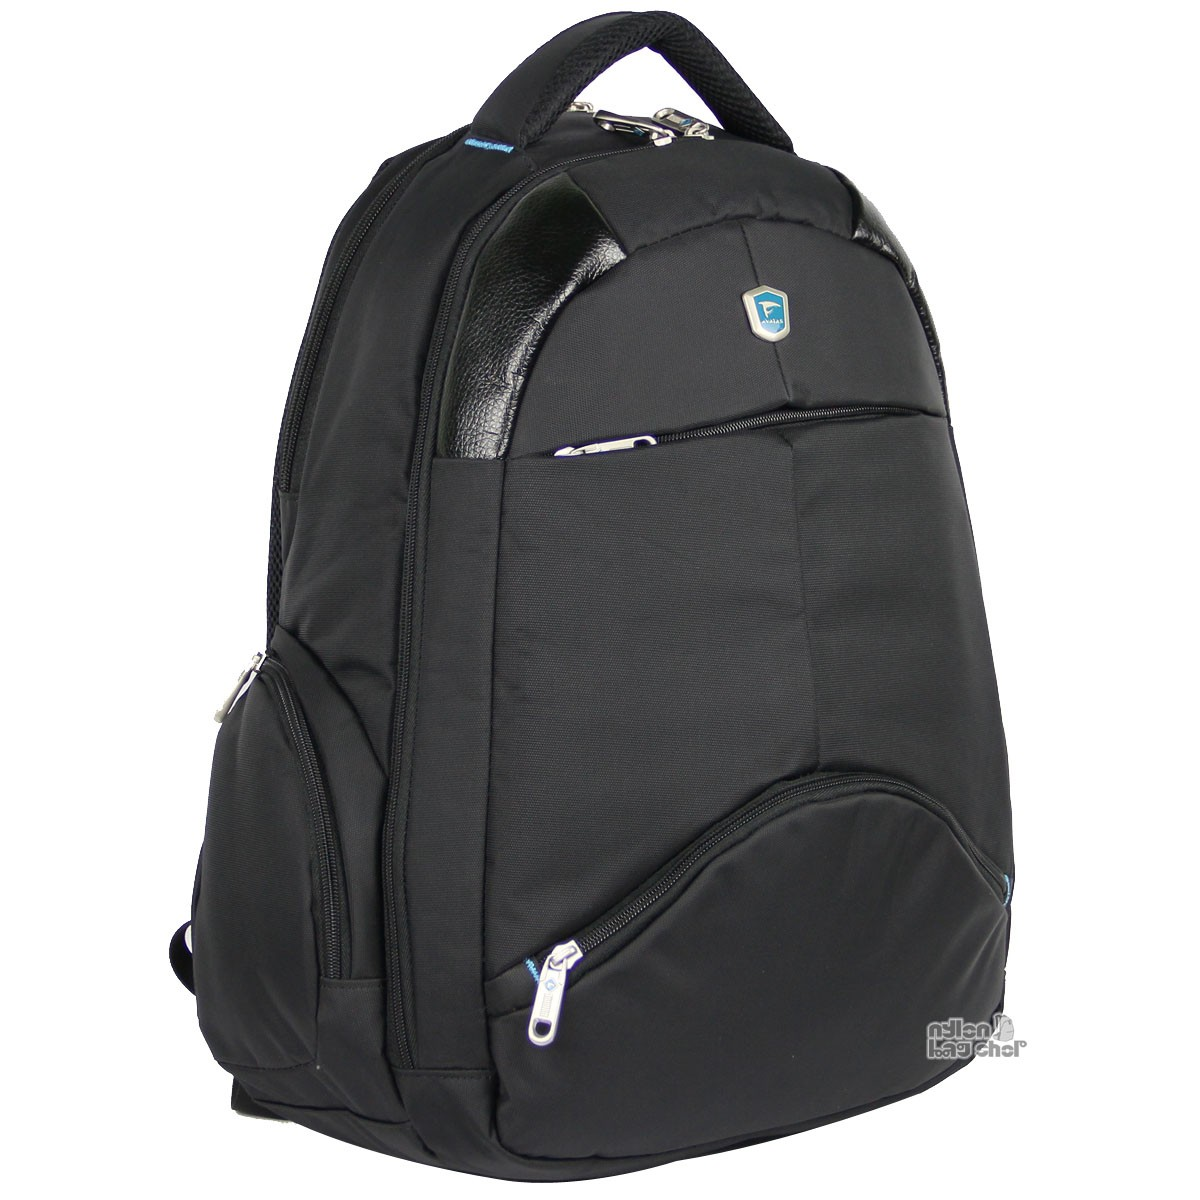 Backpack Laptop Bag z5hto1lG